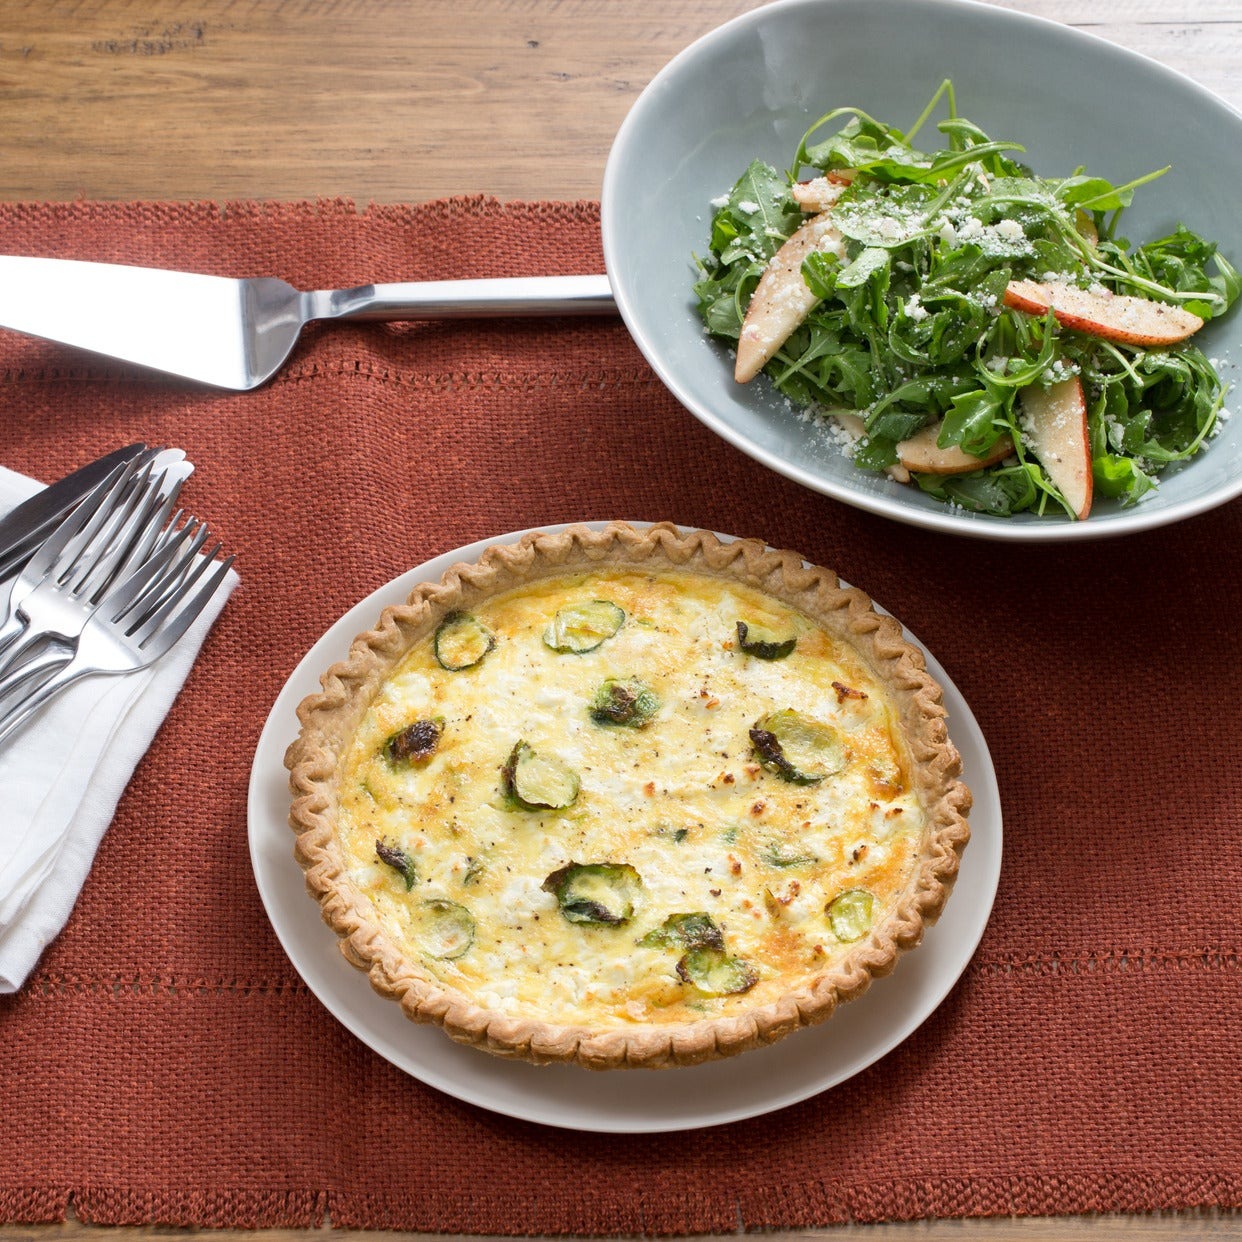 Fall Vegetable & Goat Cheese Quiche with Arugula-Pear Salad & Lemon Vinaigrette